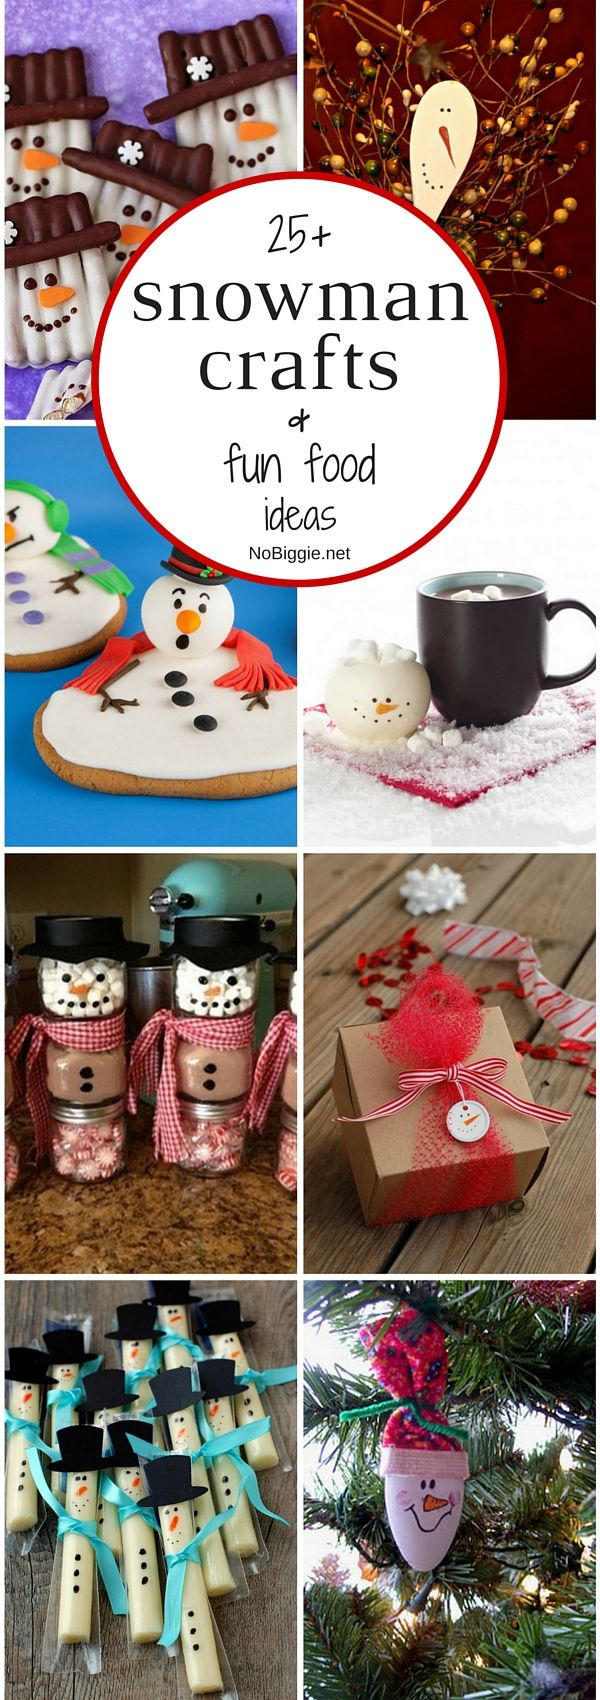 25+ snowman crafts and fun food ideas | Crafts, Food ideas ...